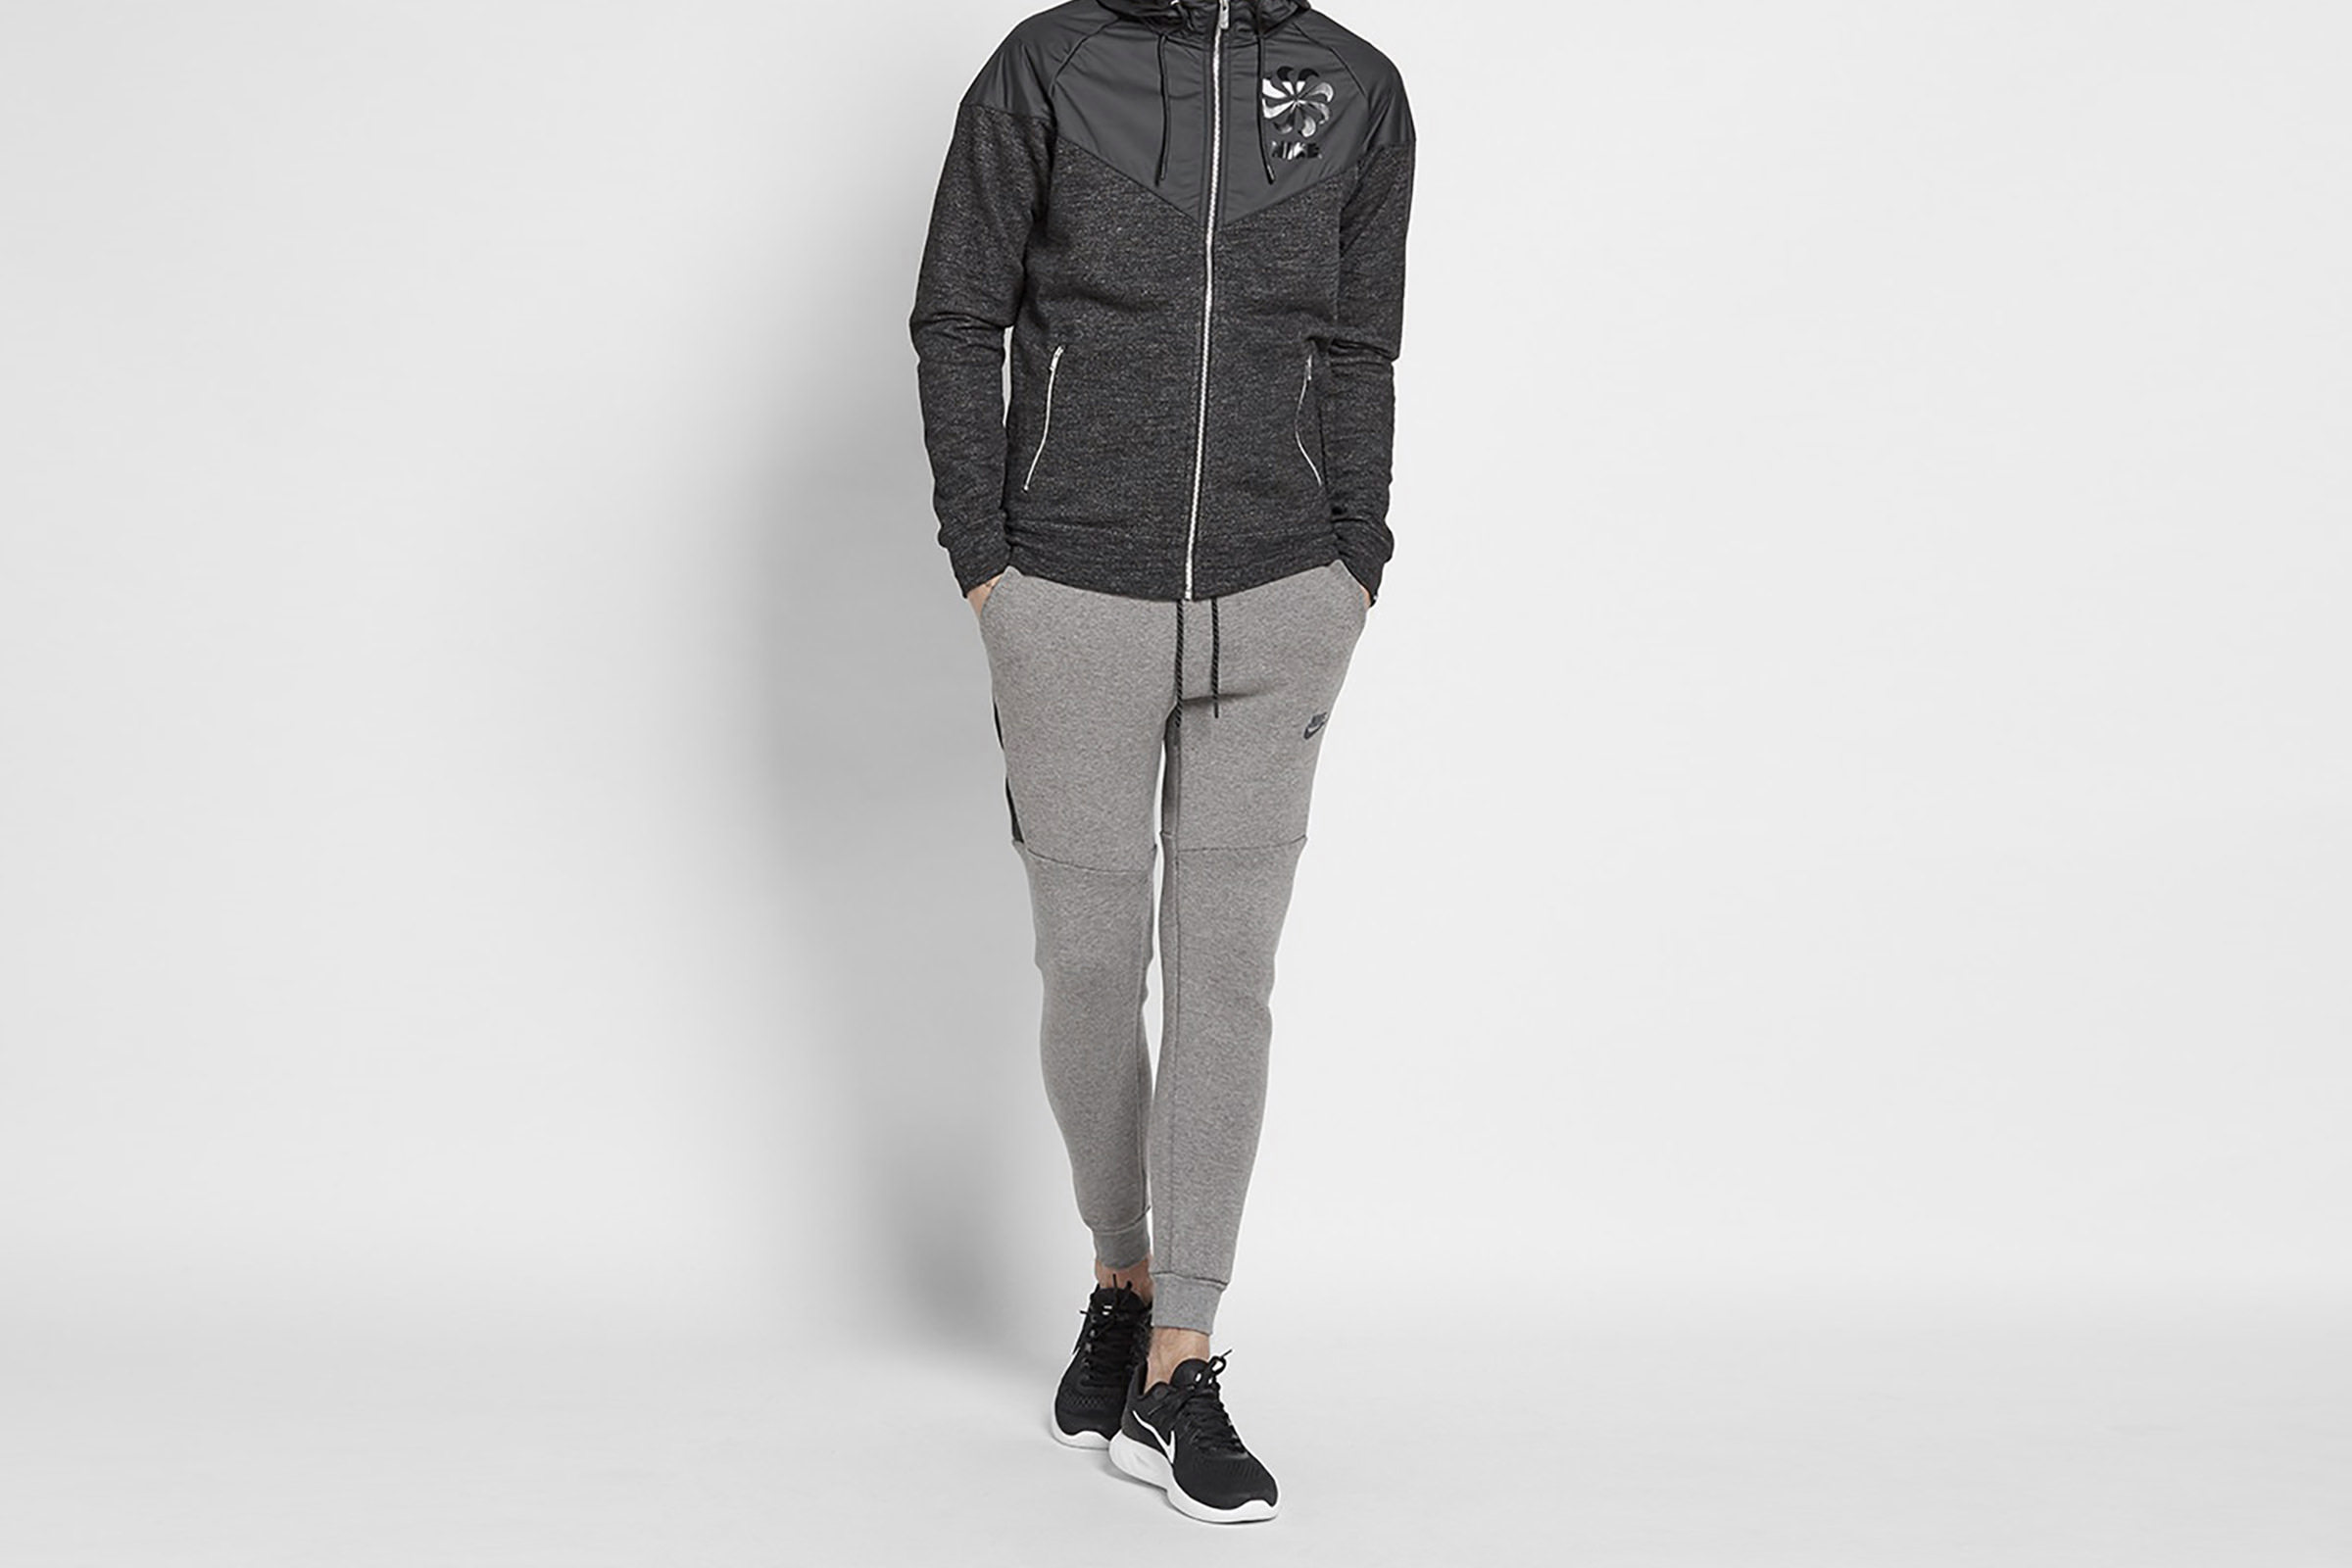 581fff637abac00612e8d3d3_tech-fleece-3mm-main